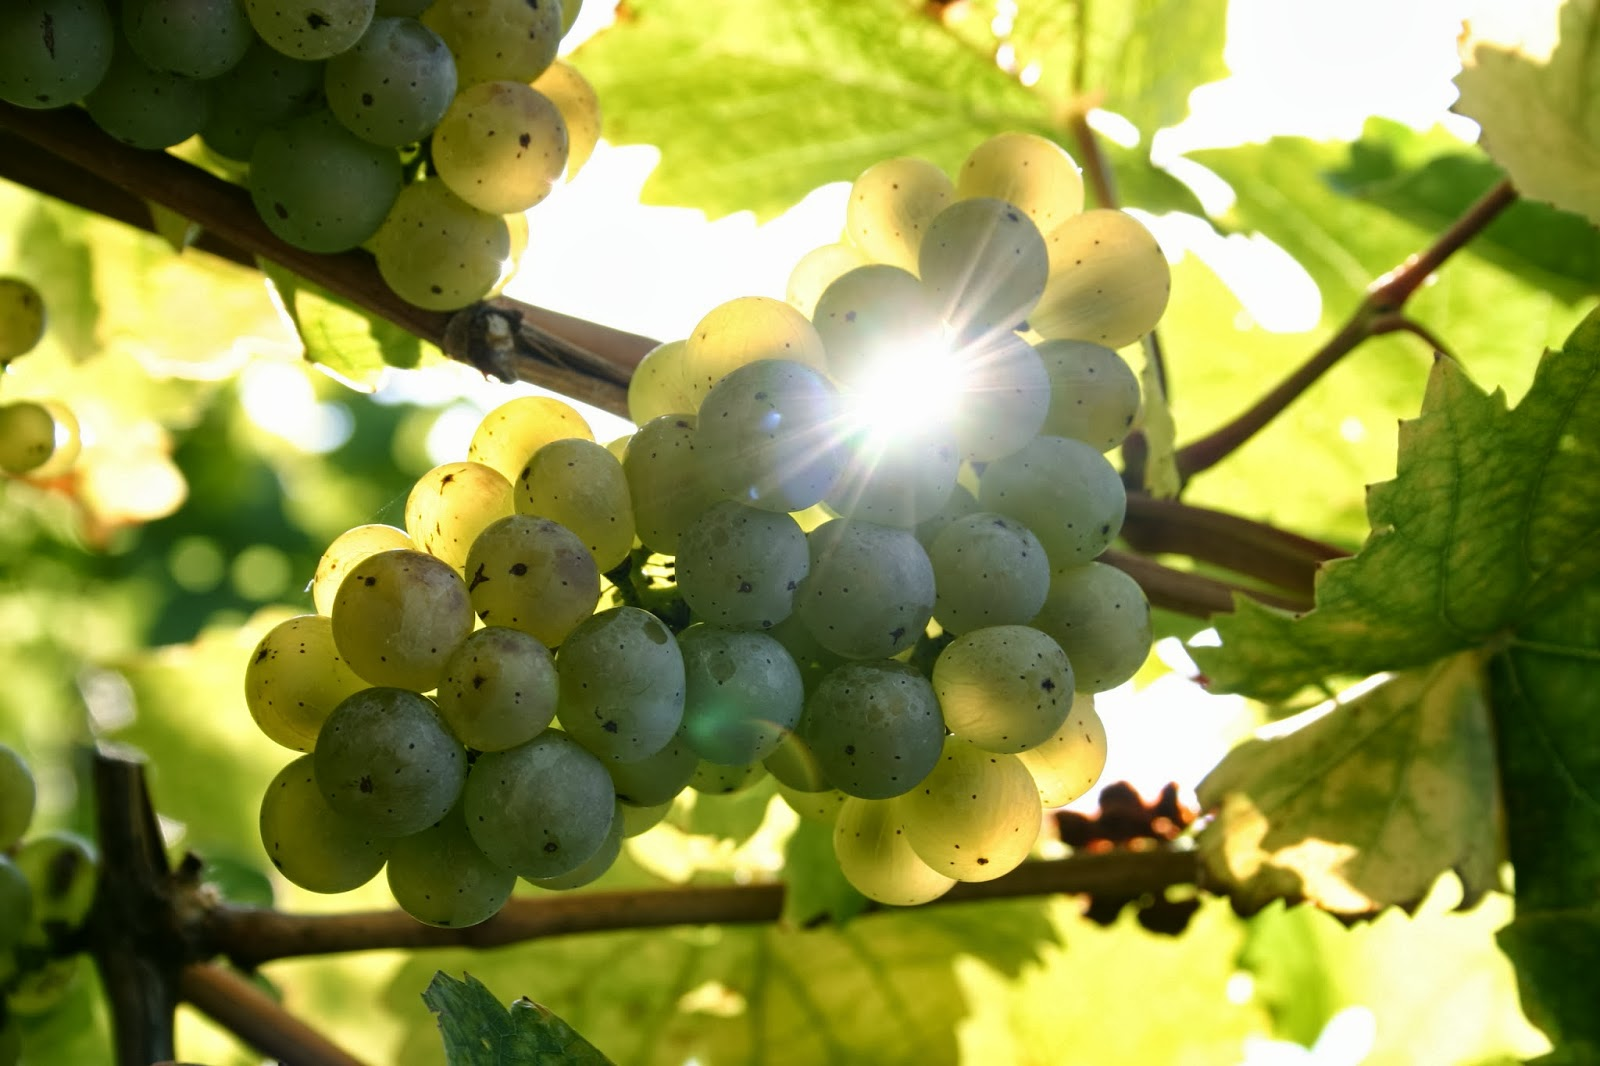 008_Rieslingtraube_im_Oktober___Riesling_grape_in_October